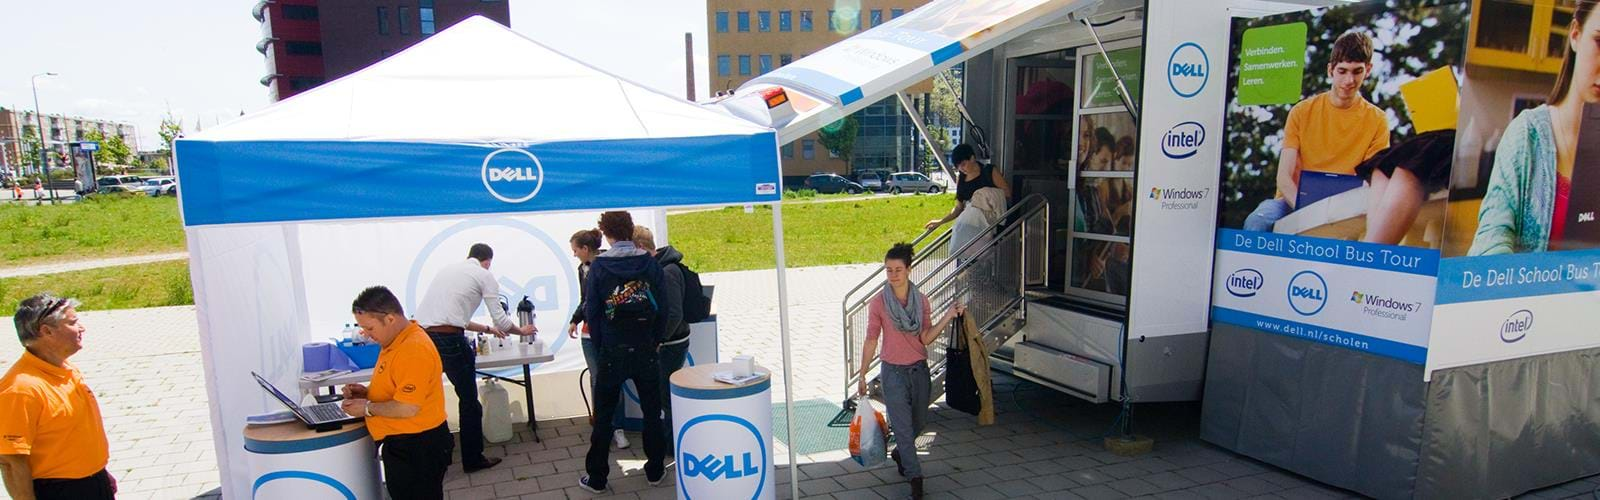 Dell Roadshow Truck B6